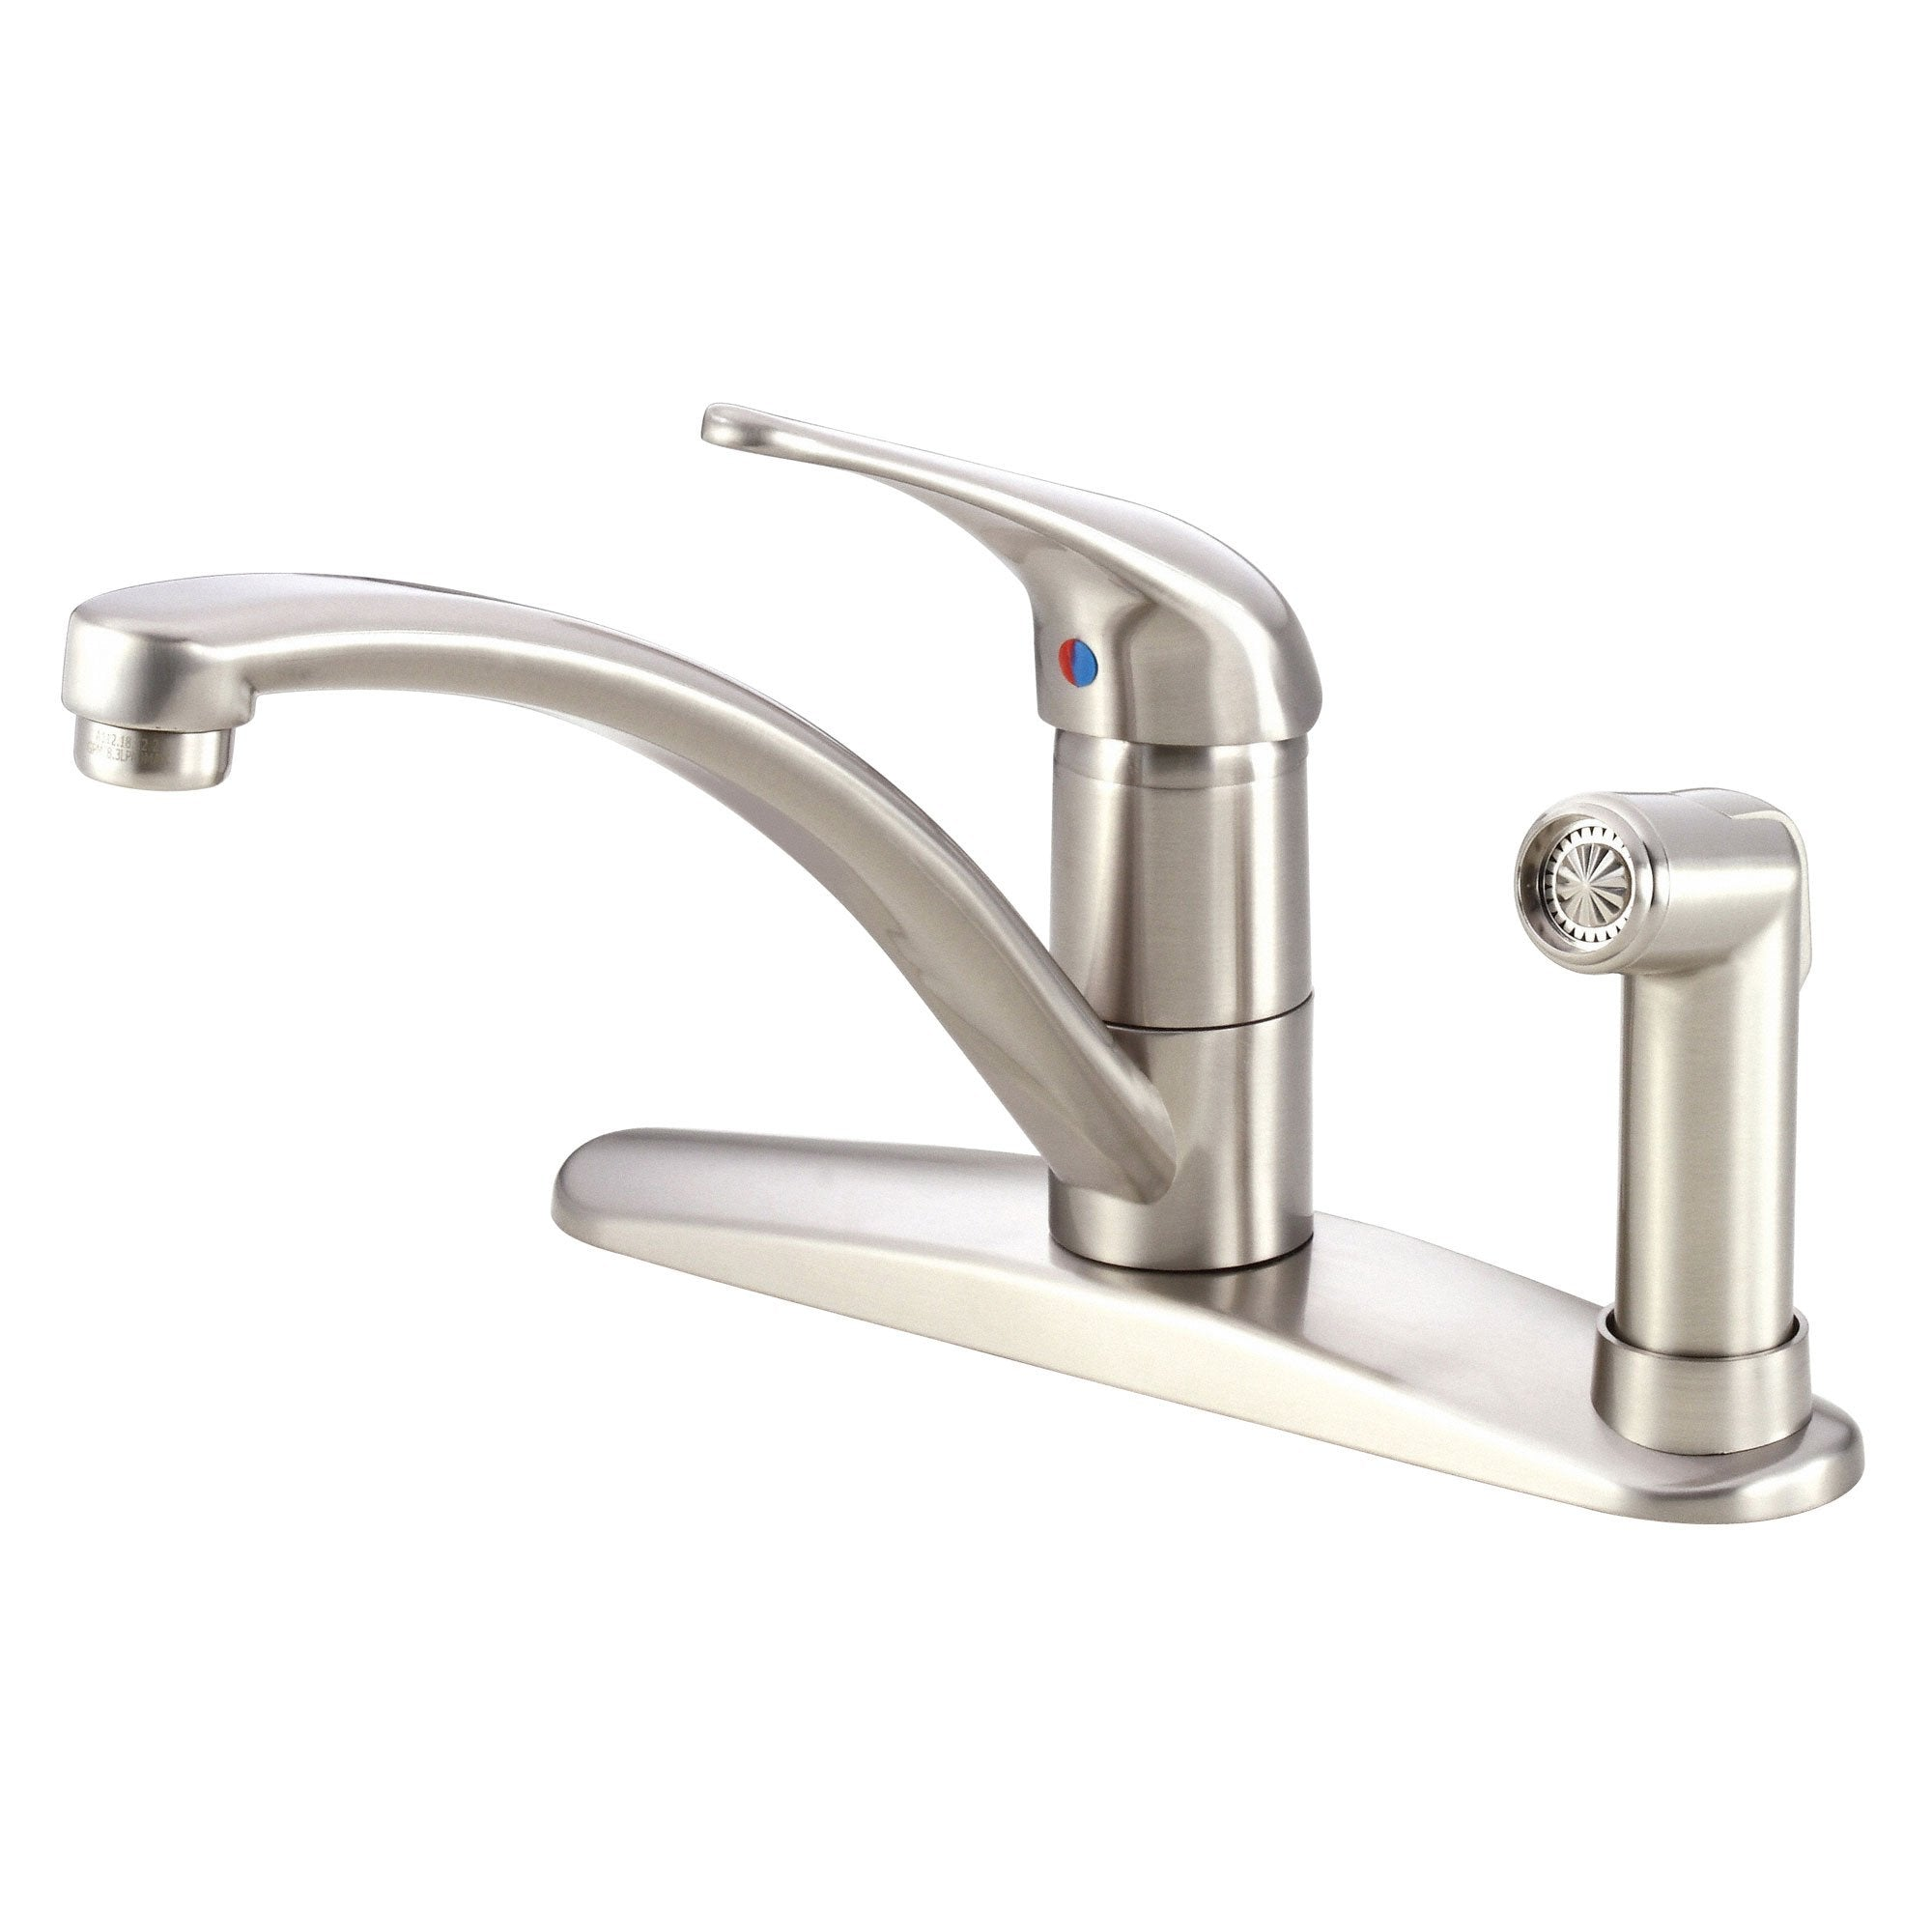 Danze Melrose Stainless Steel Basic Kitchen Faucet With Deck Plate